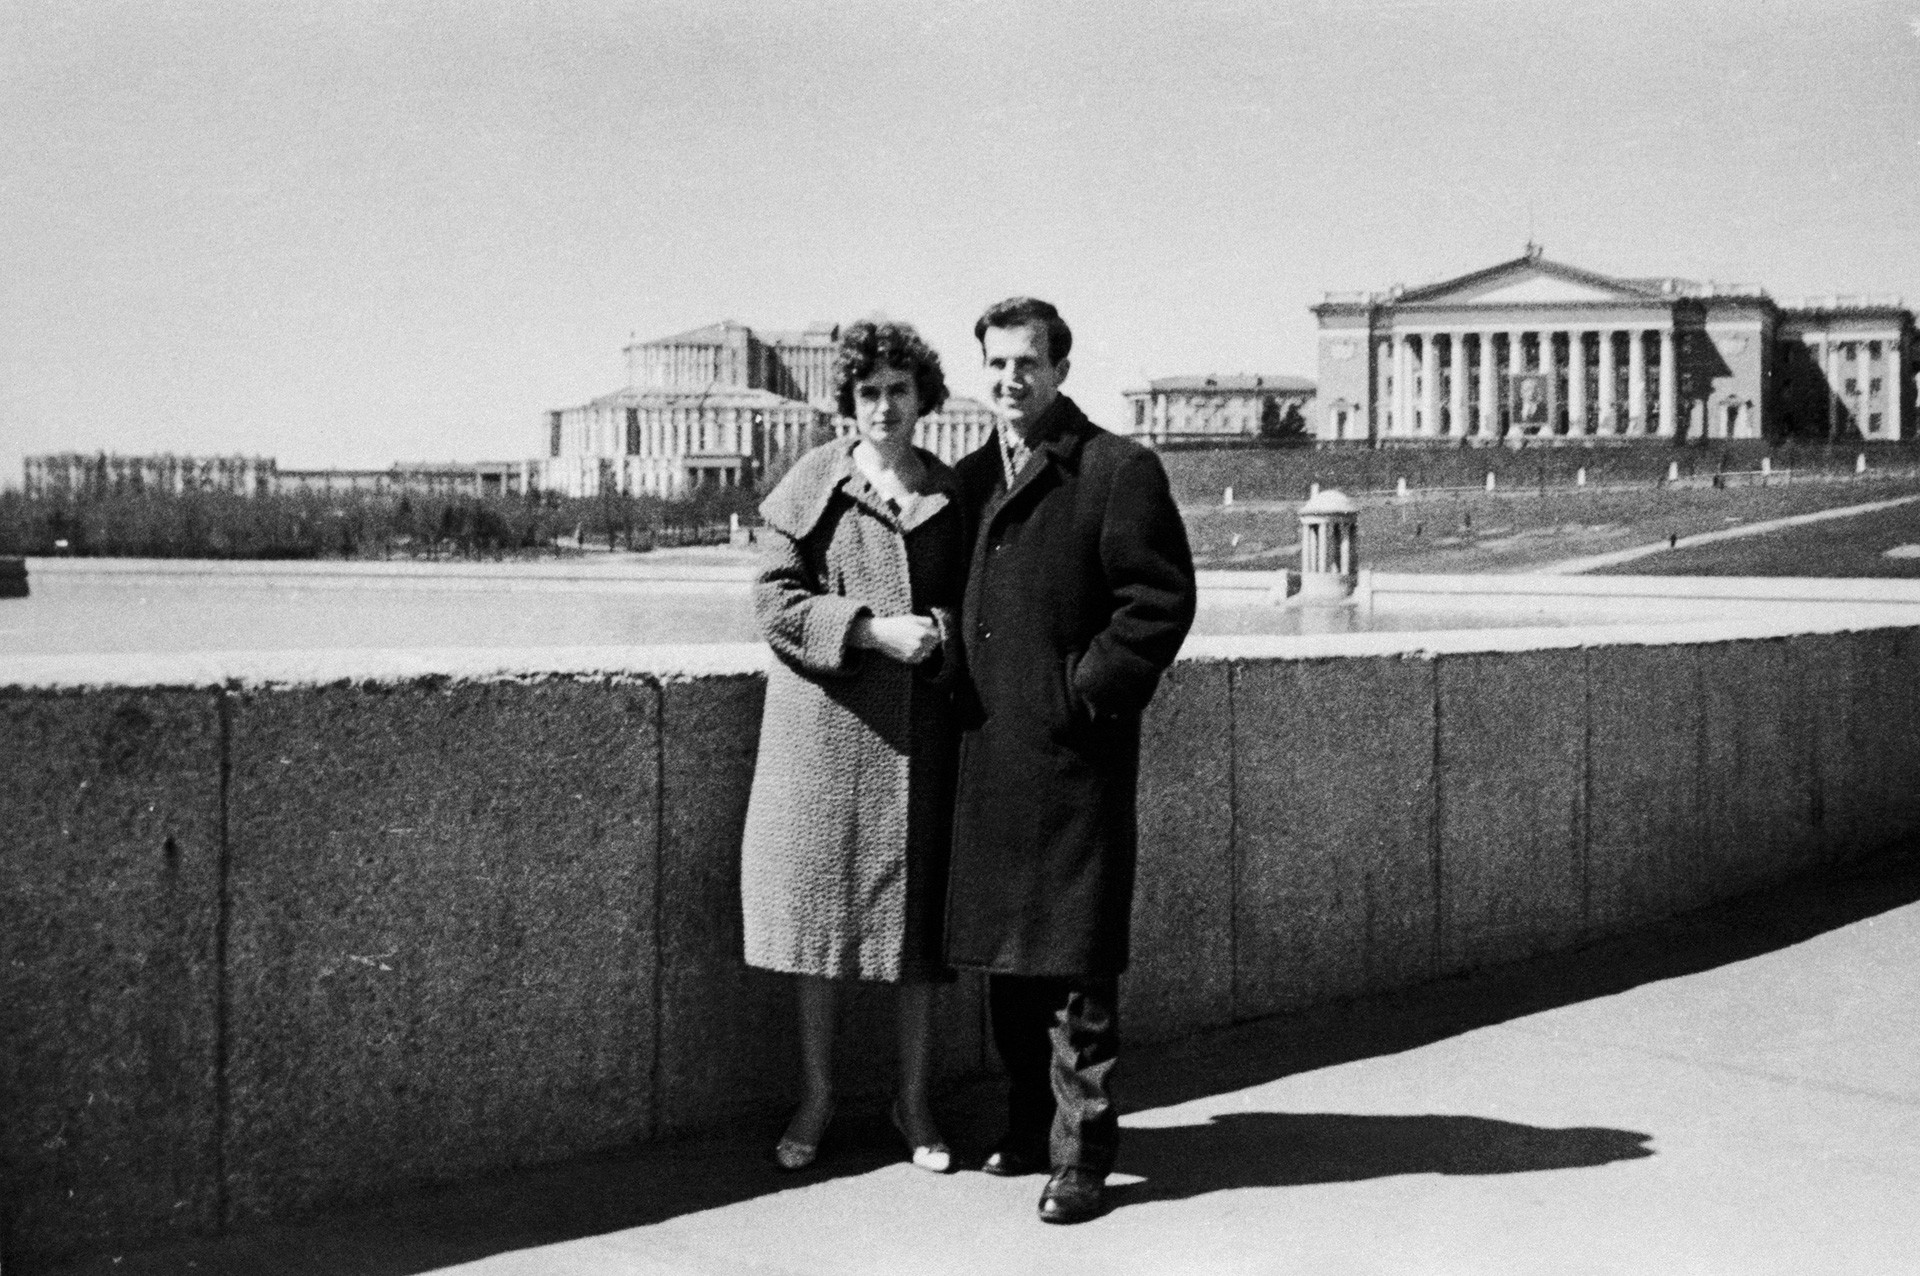 Marina Prusakowa und Lee Harvey Oswald in Russland